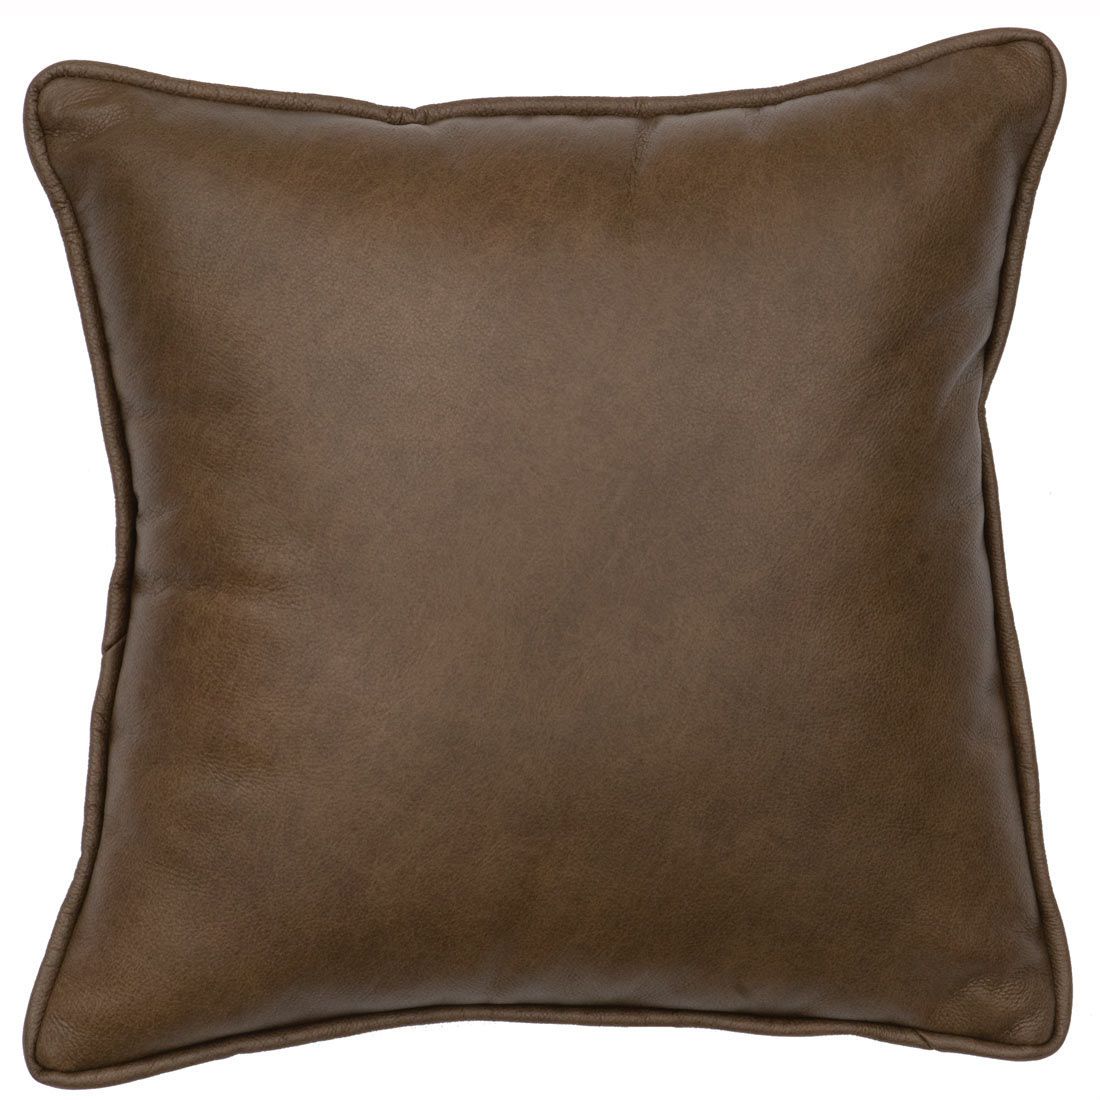 Black Forest Decor Desert flower leather accent pillow wi...